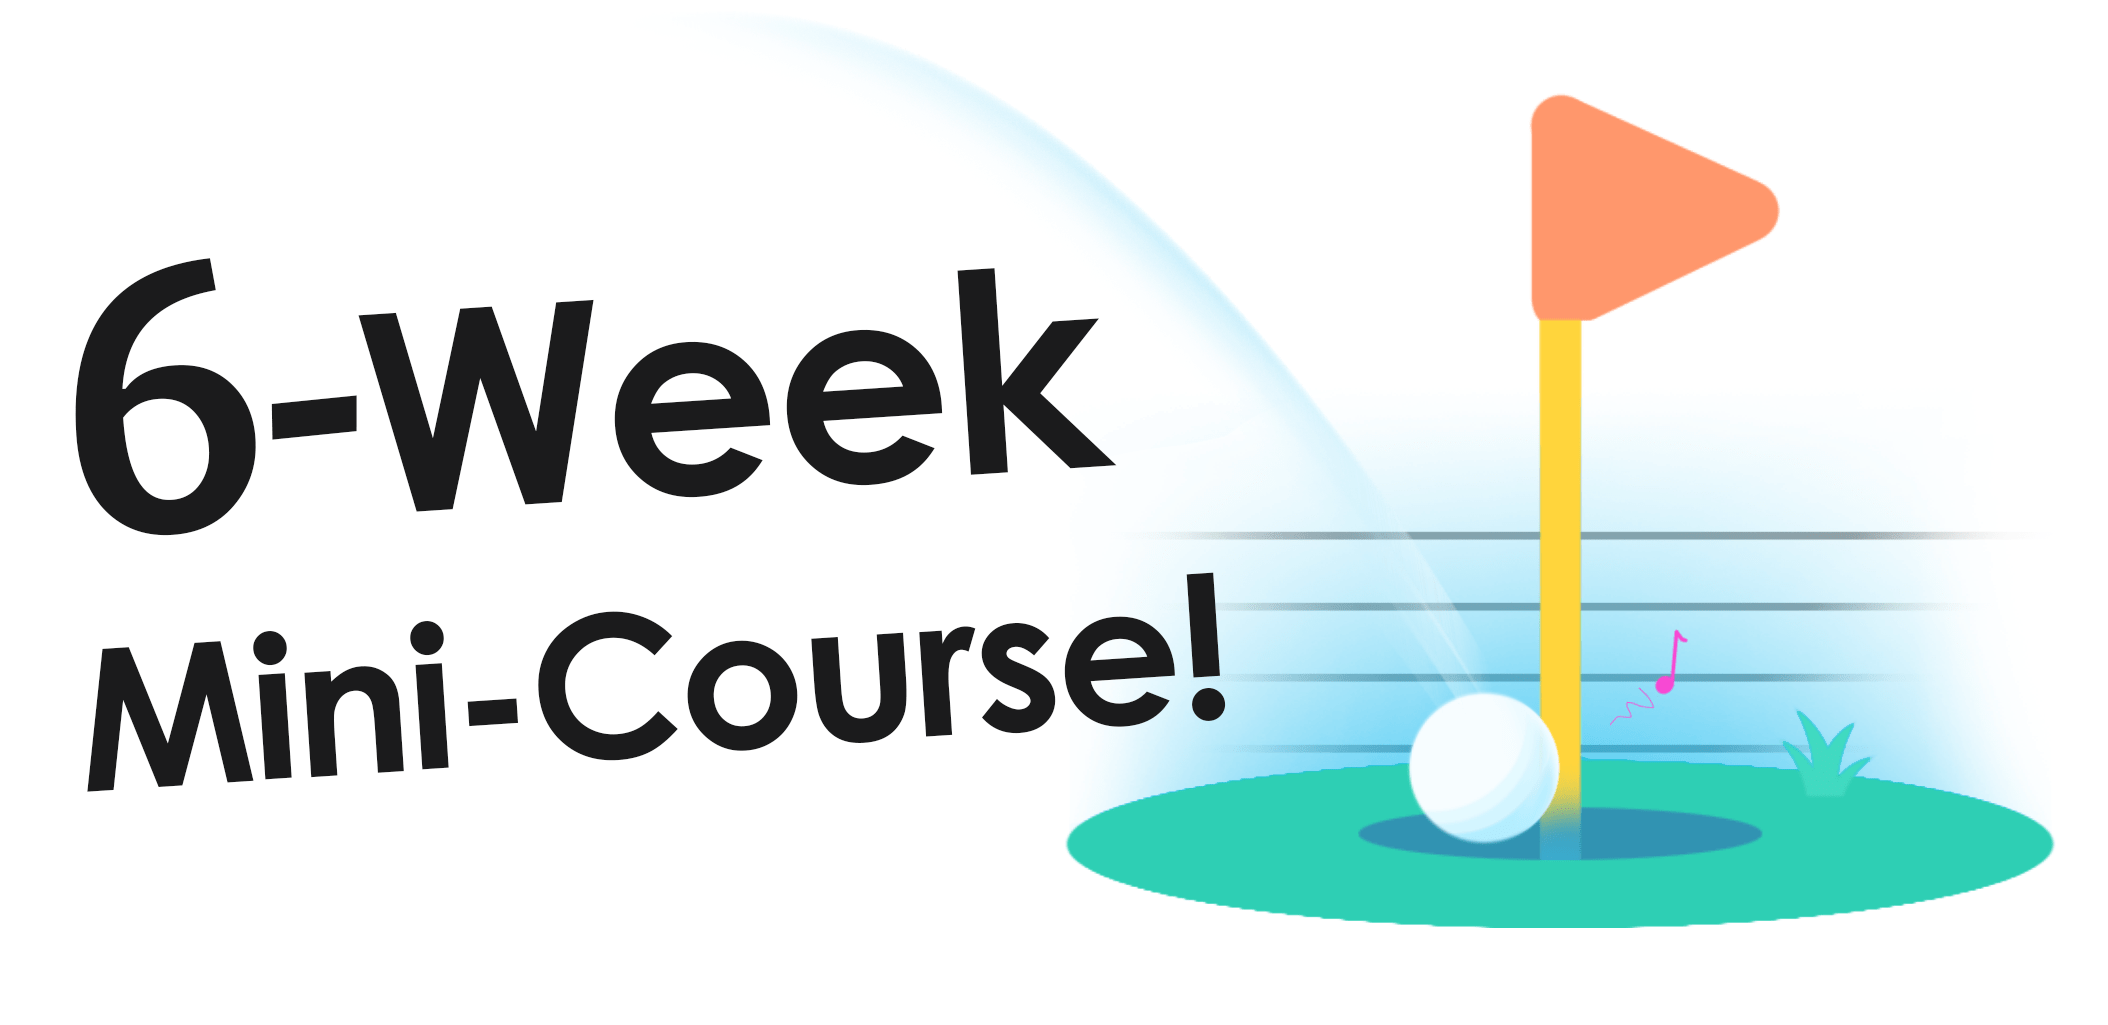 6 week course teachable banner 02